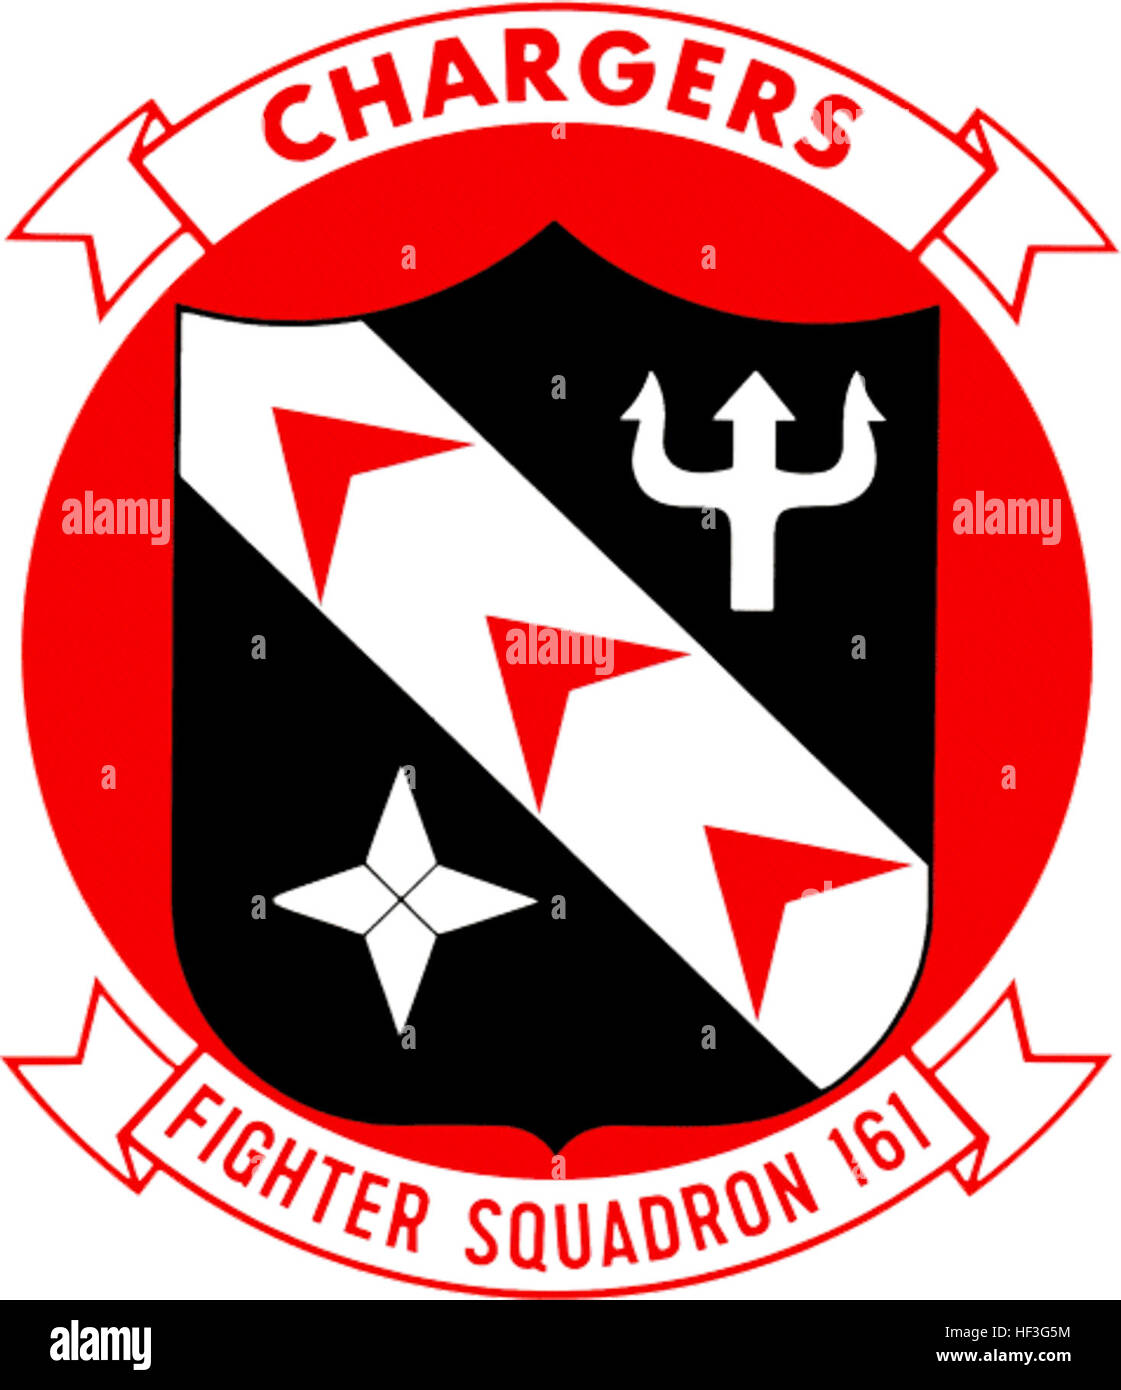 Fighter squadron 161 us navy insignia c1967 stock photo royalty fighter squadron 161 us navy insignia c1967 biocorpaavc